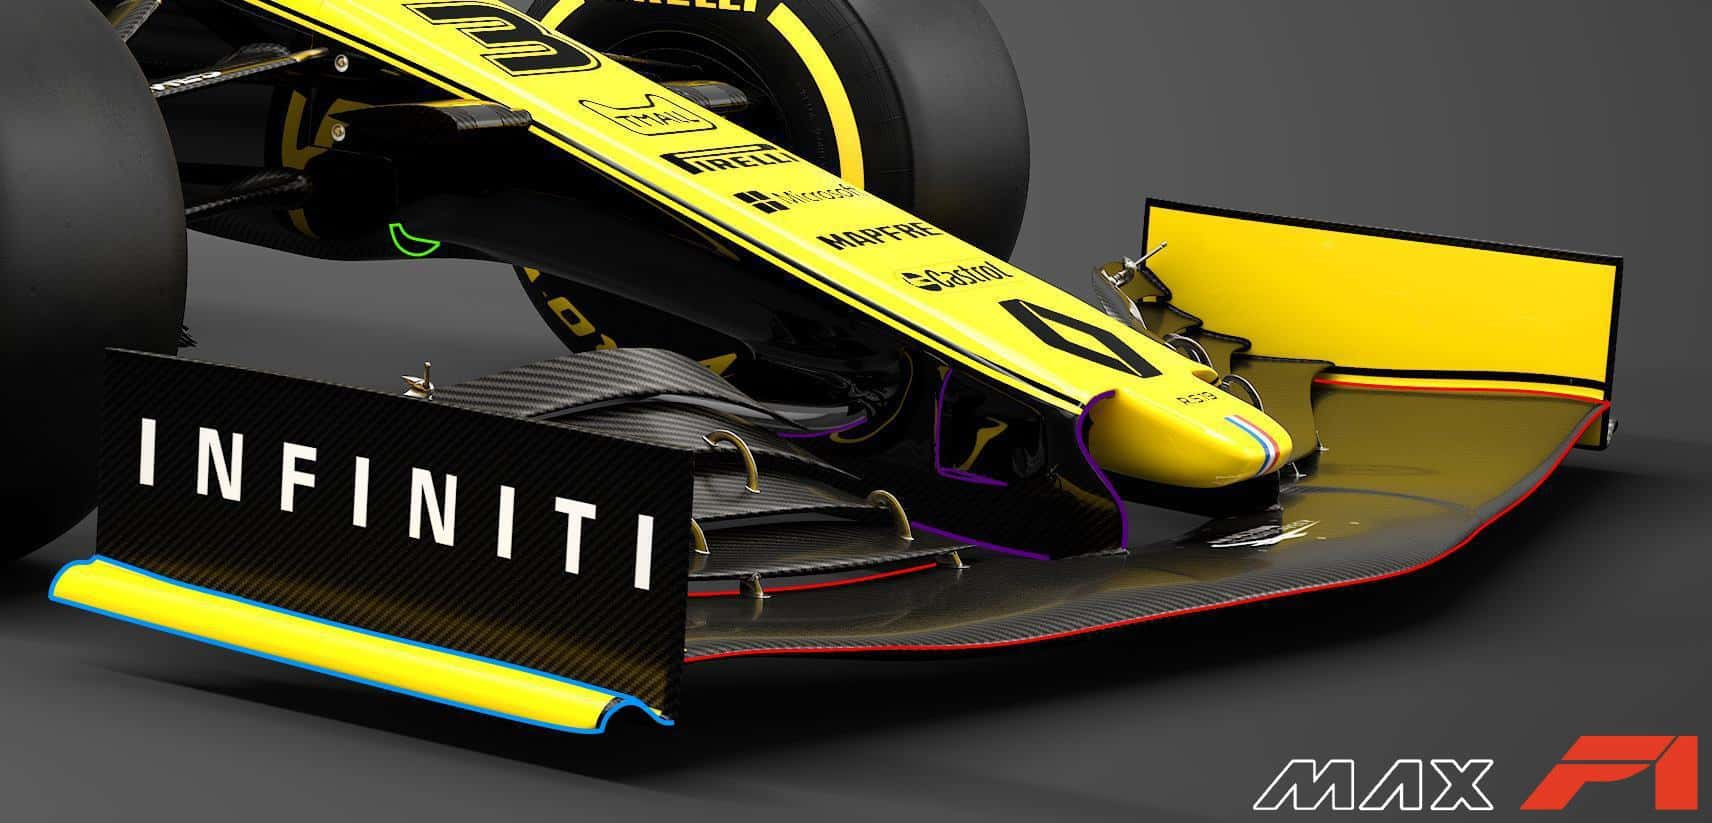 2019 Renault RS19 front wing detail side Photo Renault edited by MAXF1net